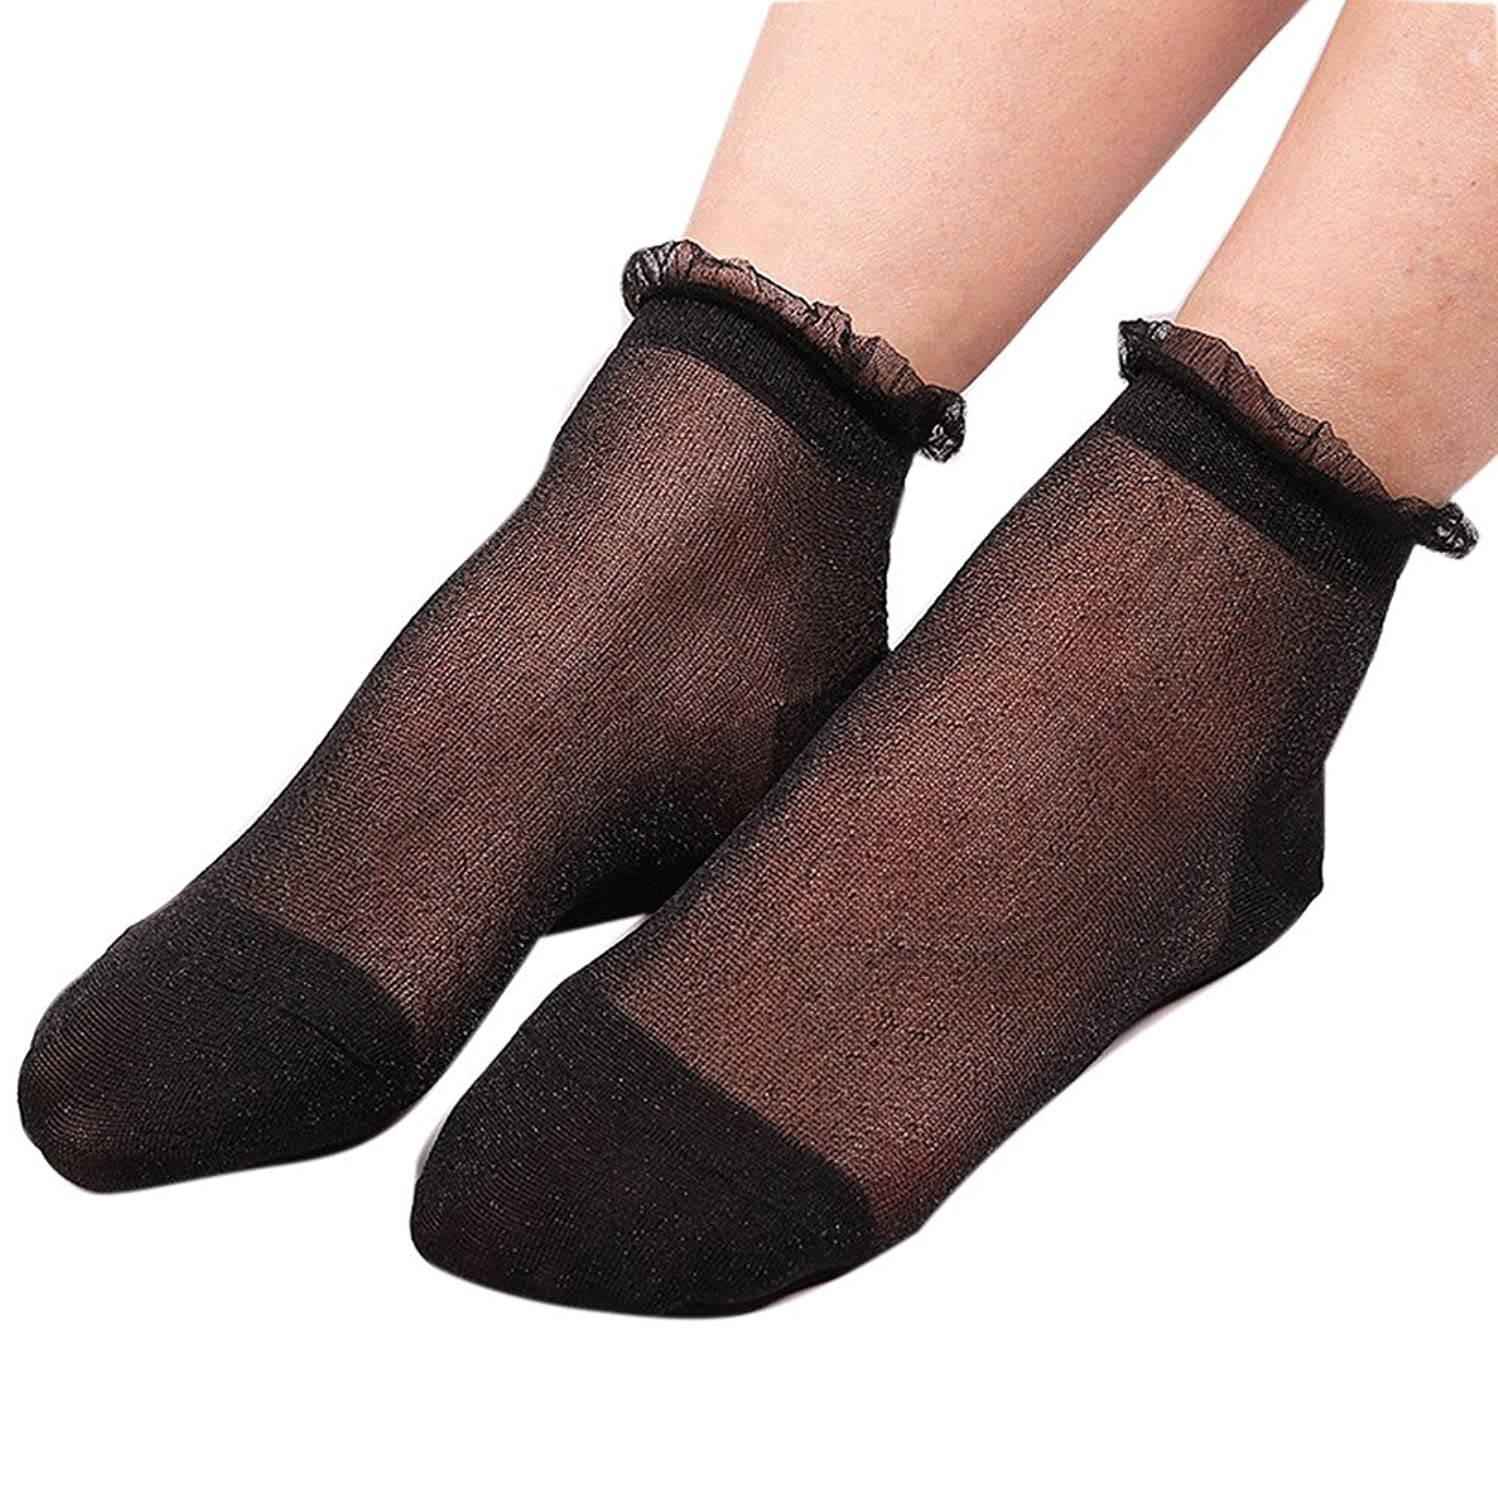 NotingBuss Ankle High Sheer Socks, Nylon Silky Spring Summer Short Ankle Hose Stocking Socks Smooth